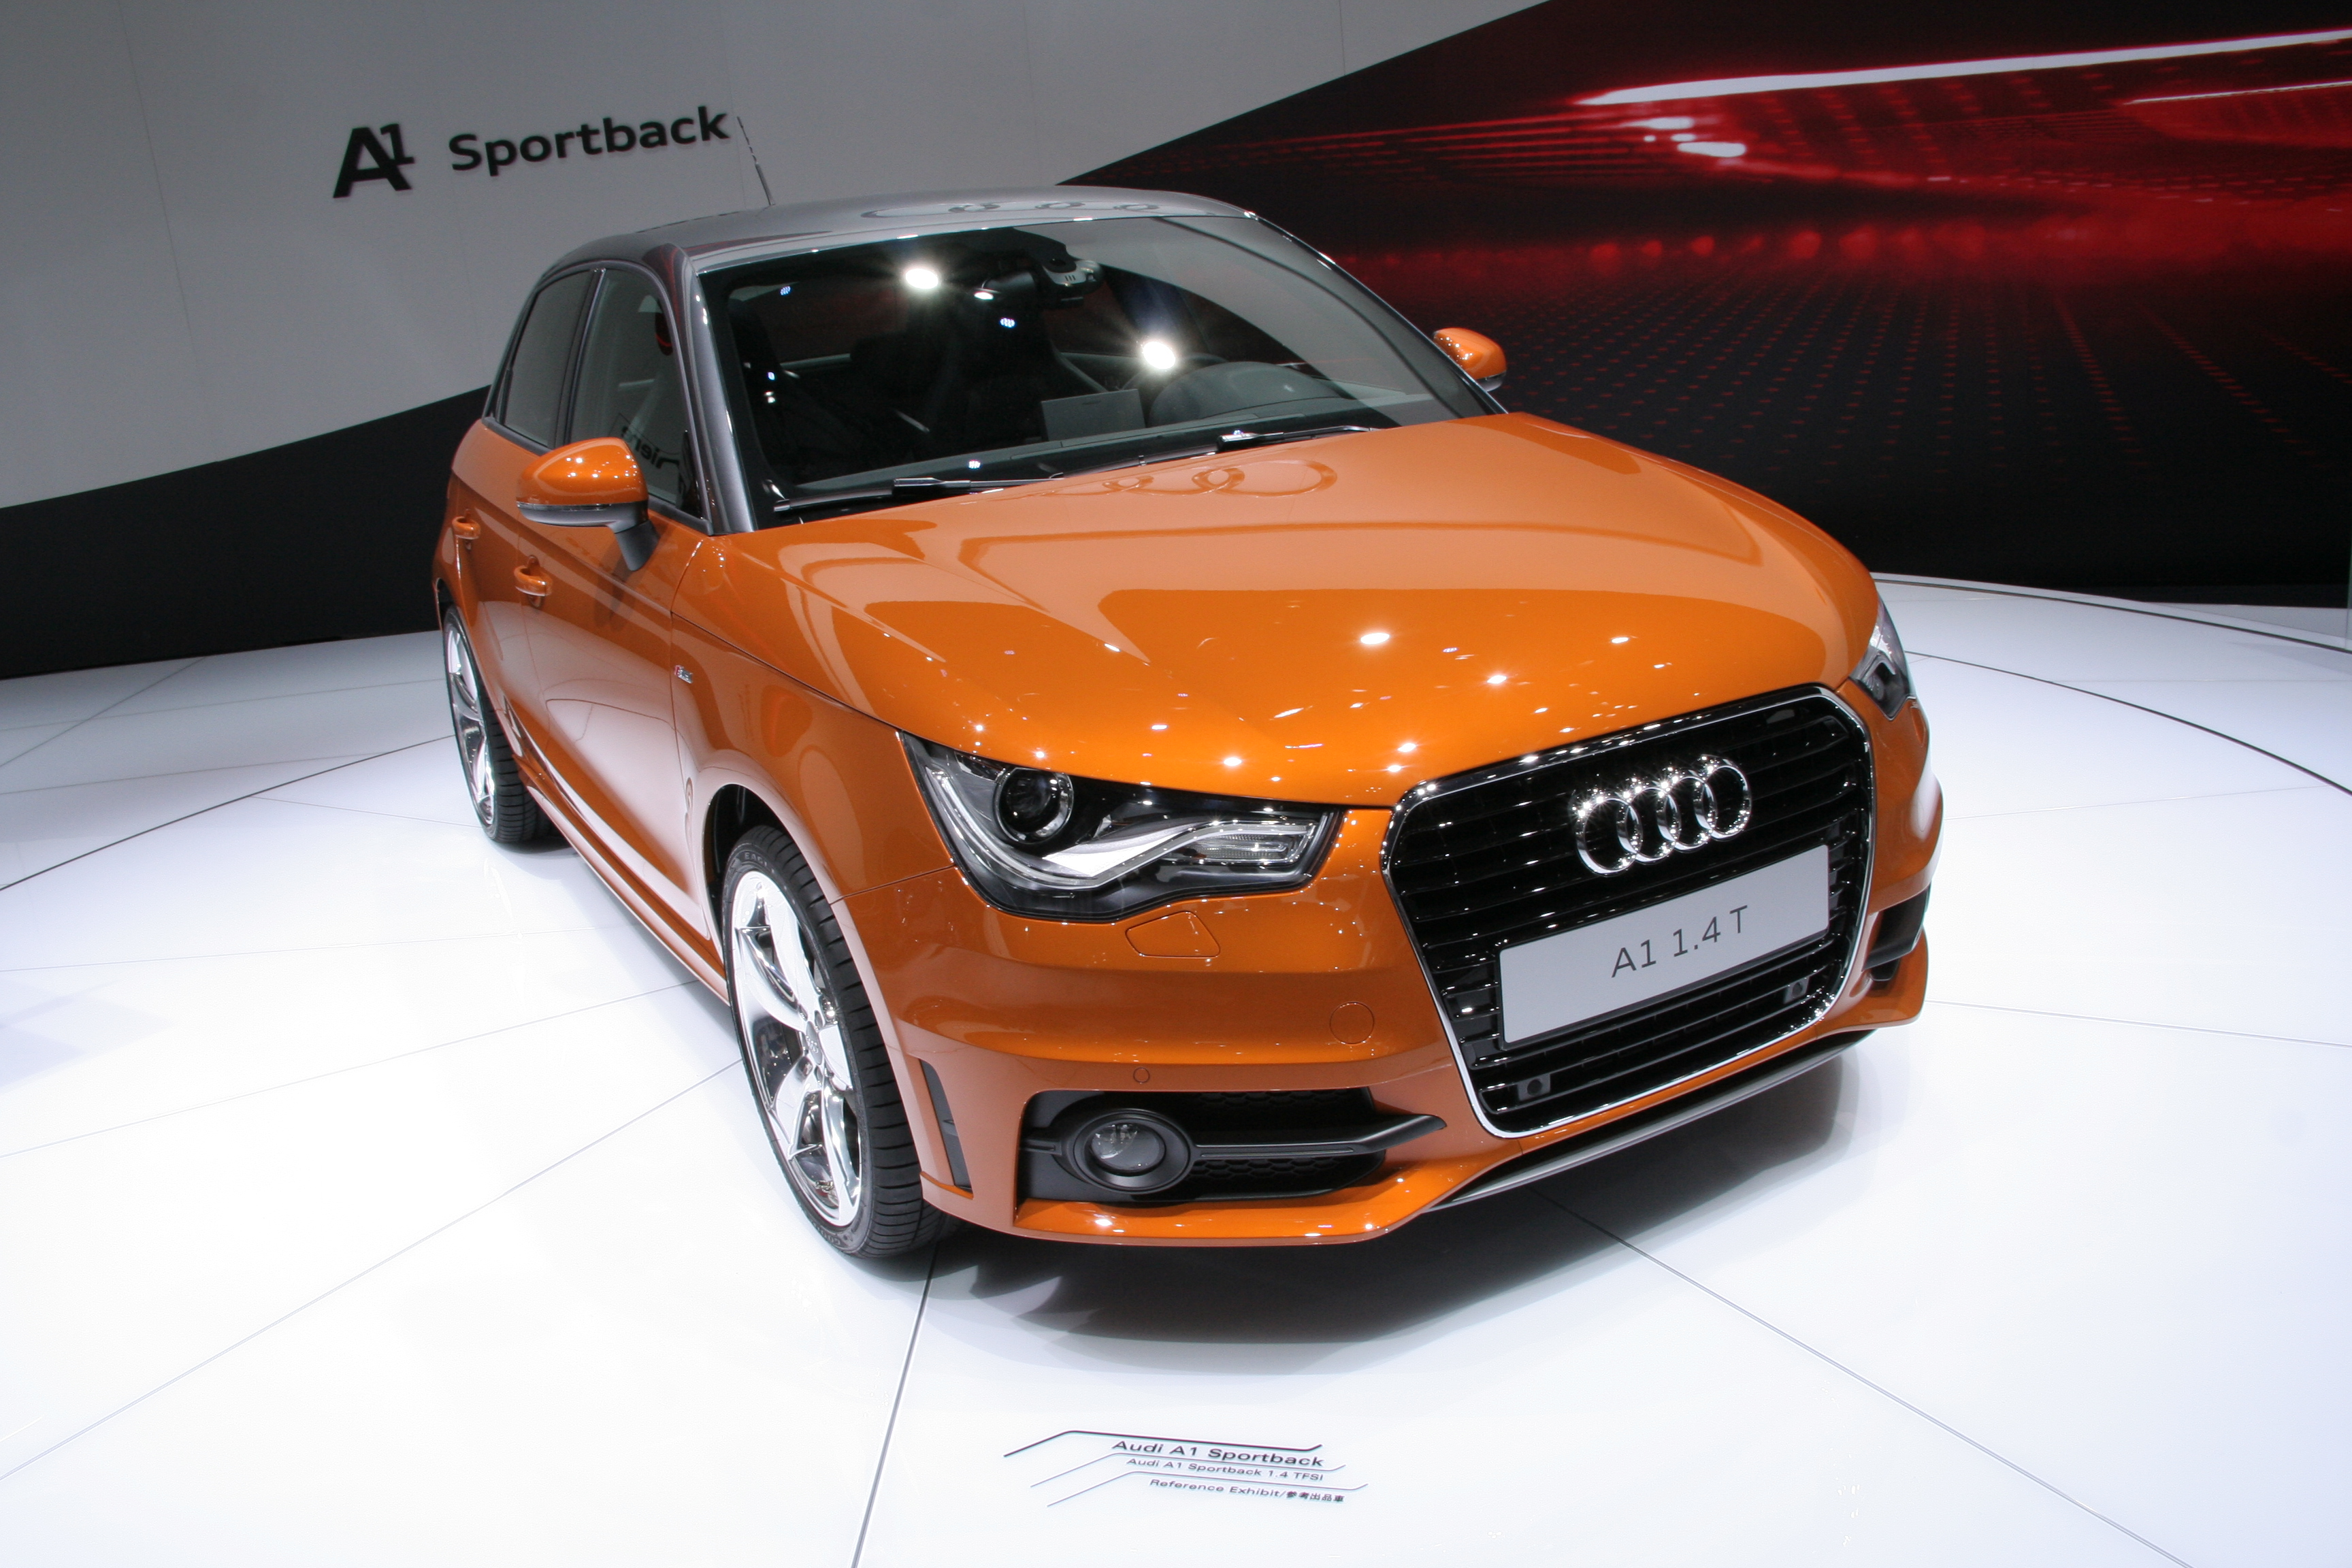 File Audi A1 1 4t Sportback Front Jpg Wikimedia Commons